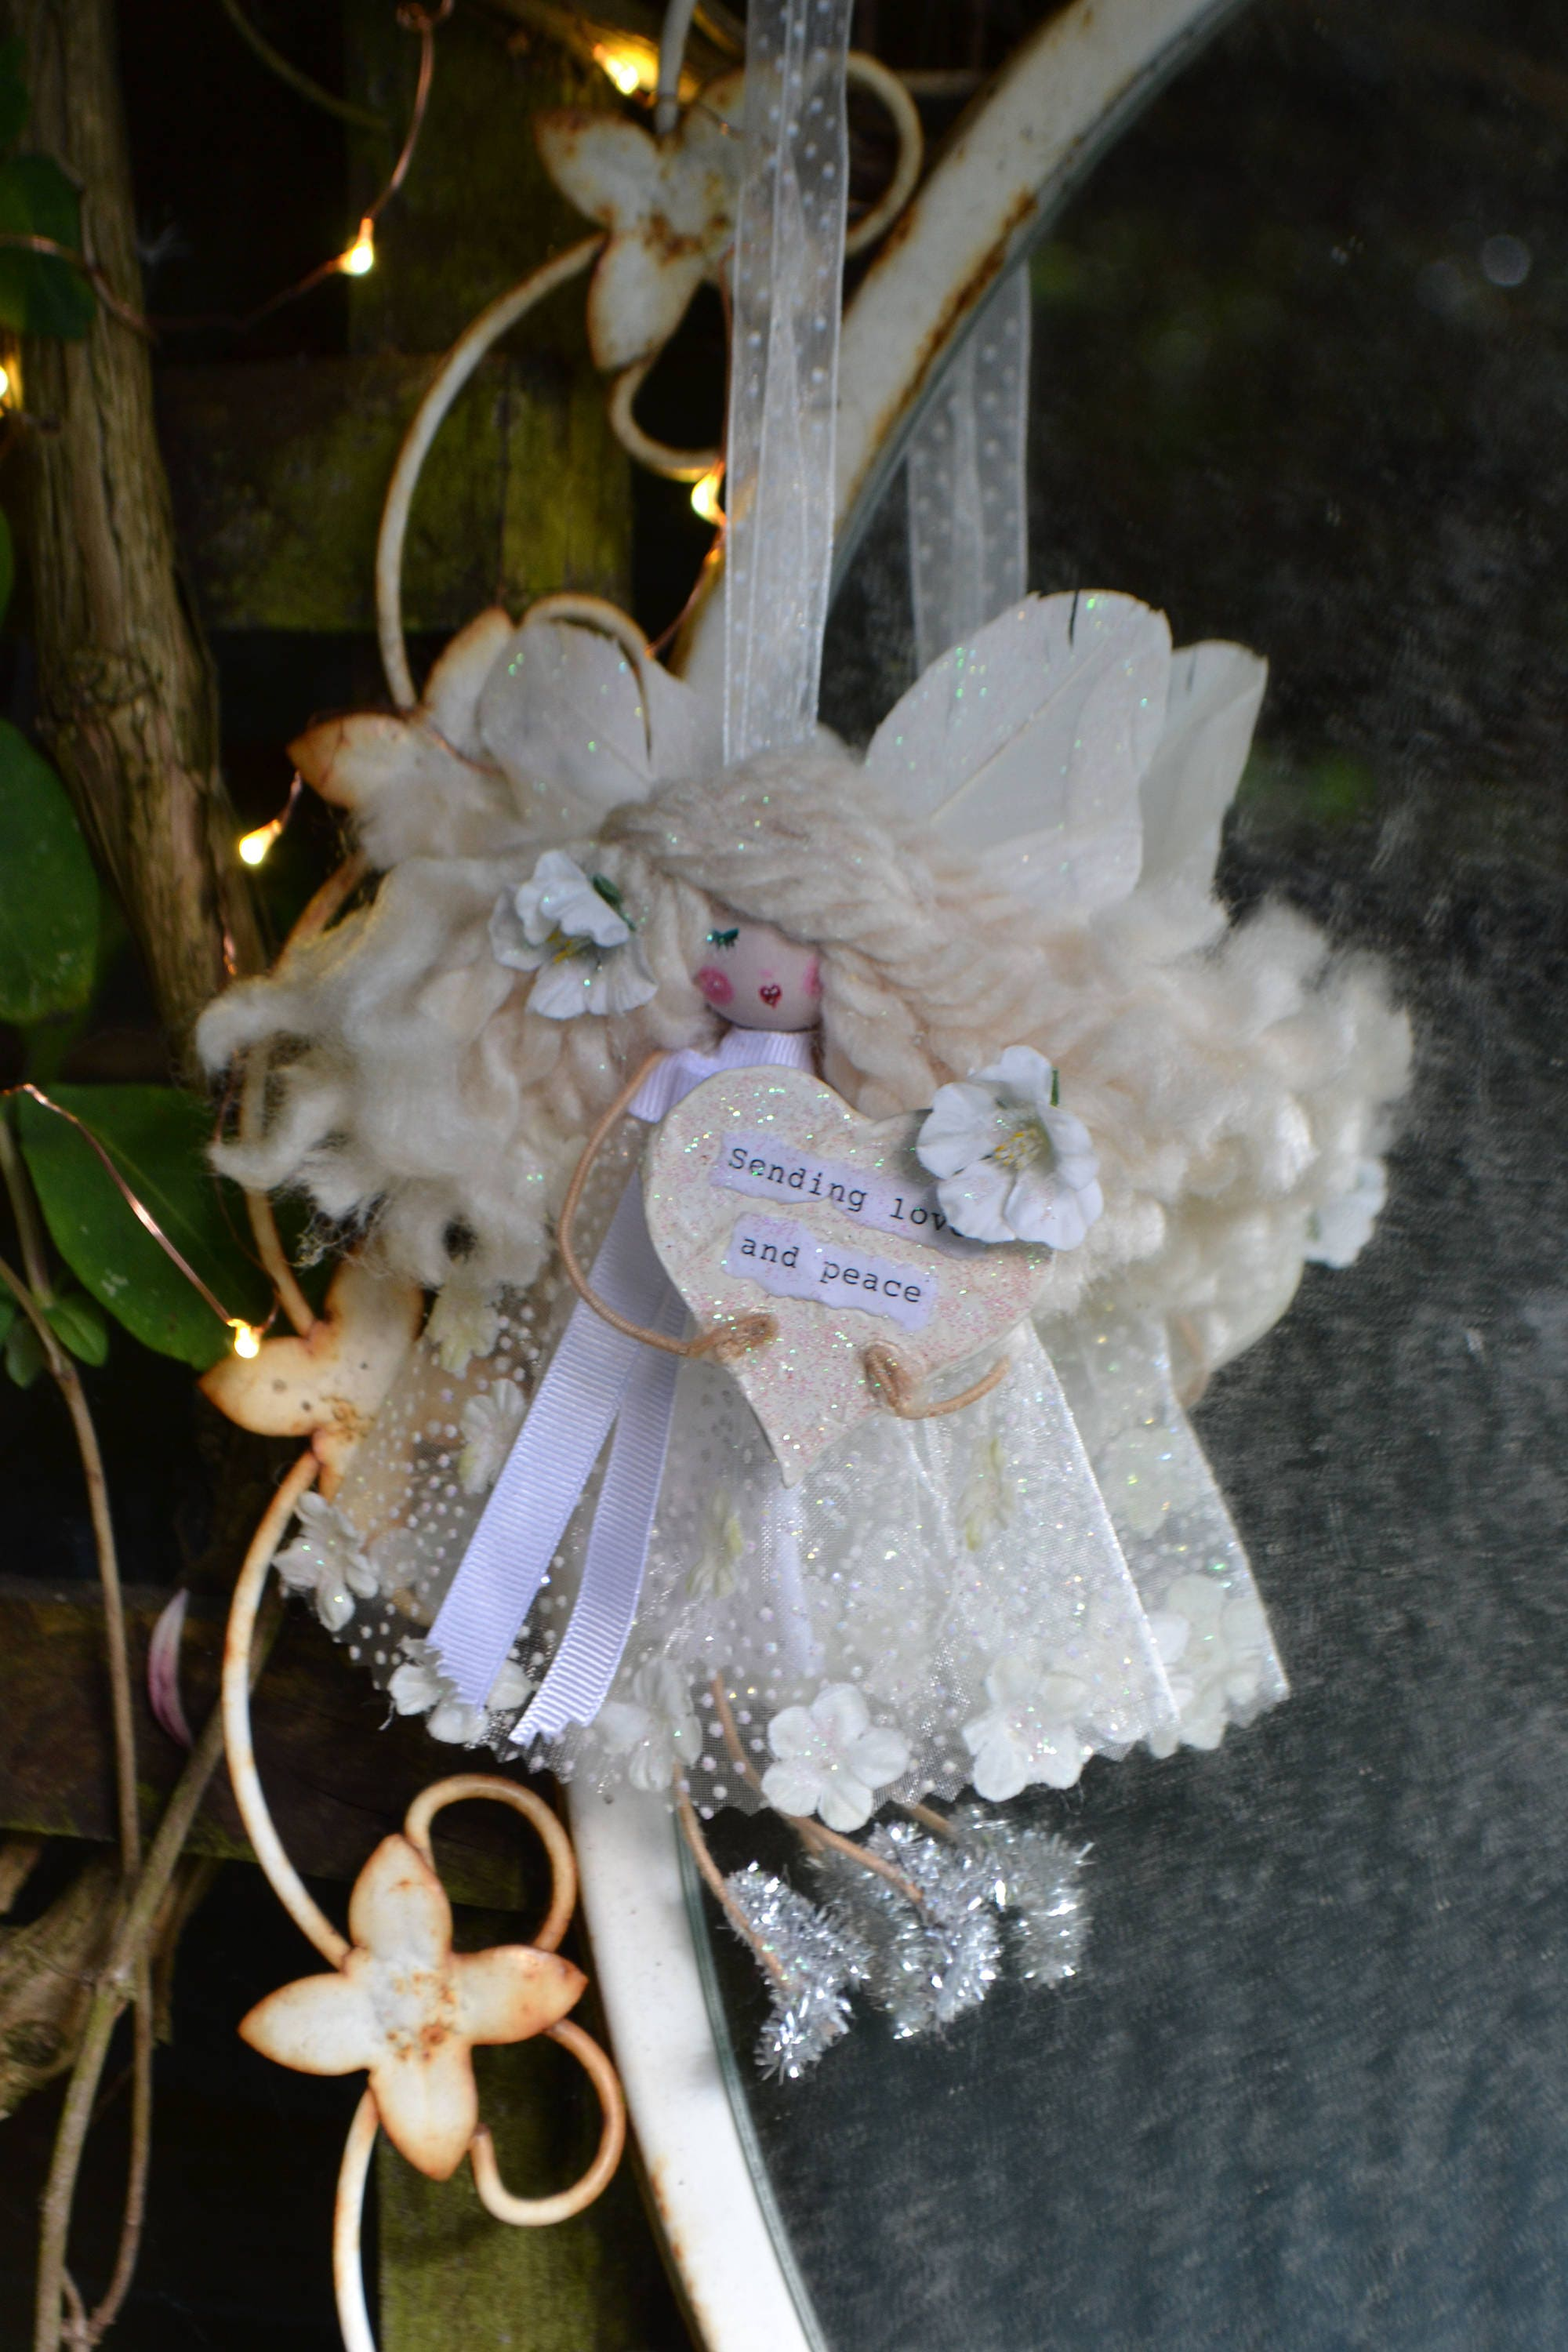 Guardian Angel Fairy doll. With message saying (Sending love and peace).